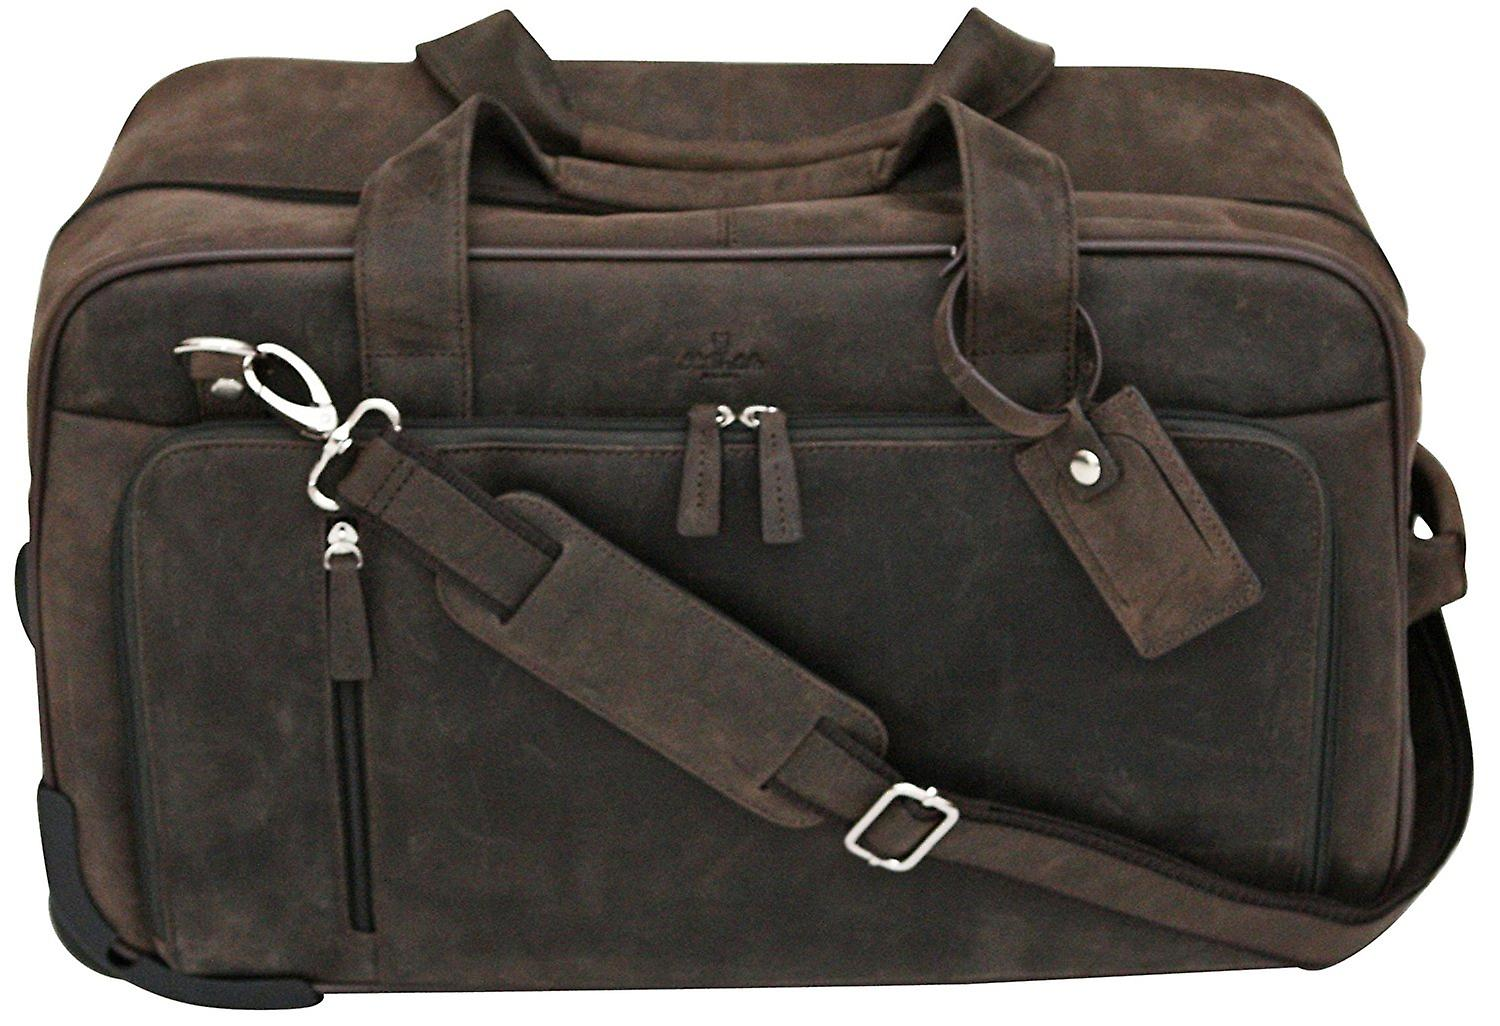 S Babila Top Grain Leather Wheeled Holdall Duffle Overnight Hand Luggage Roller Cabin Bag